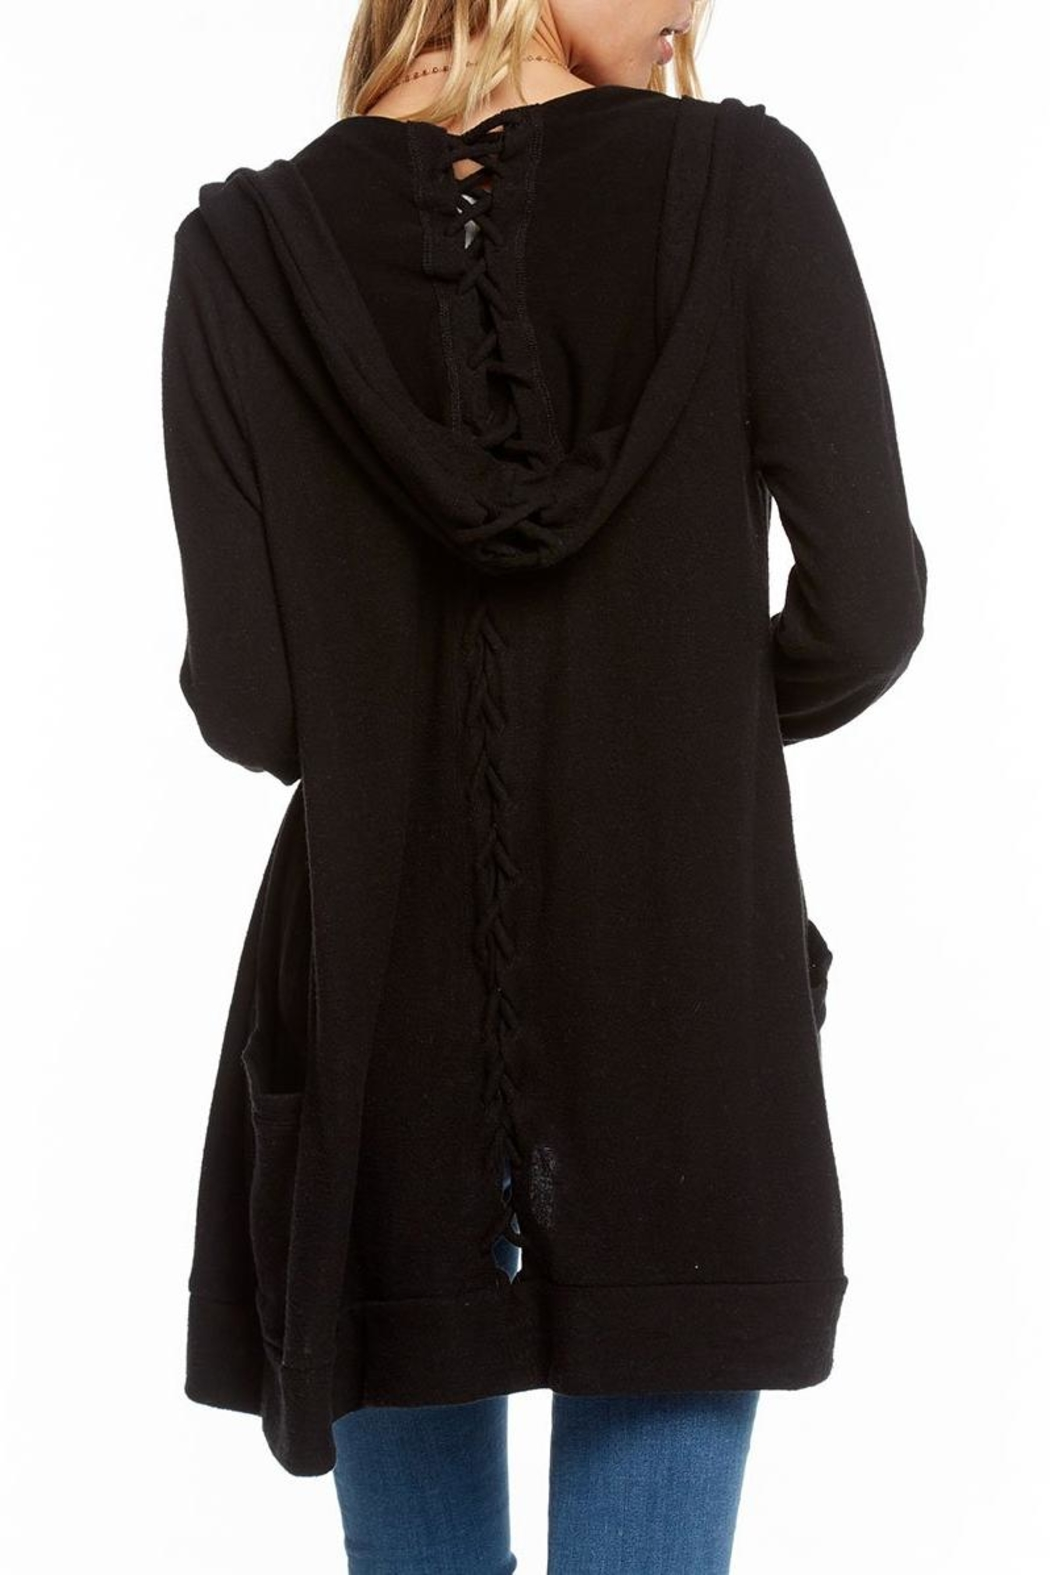 Chaser Lace-Back Hooded Cardigan - Front Full Image